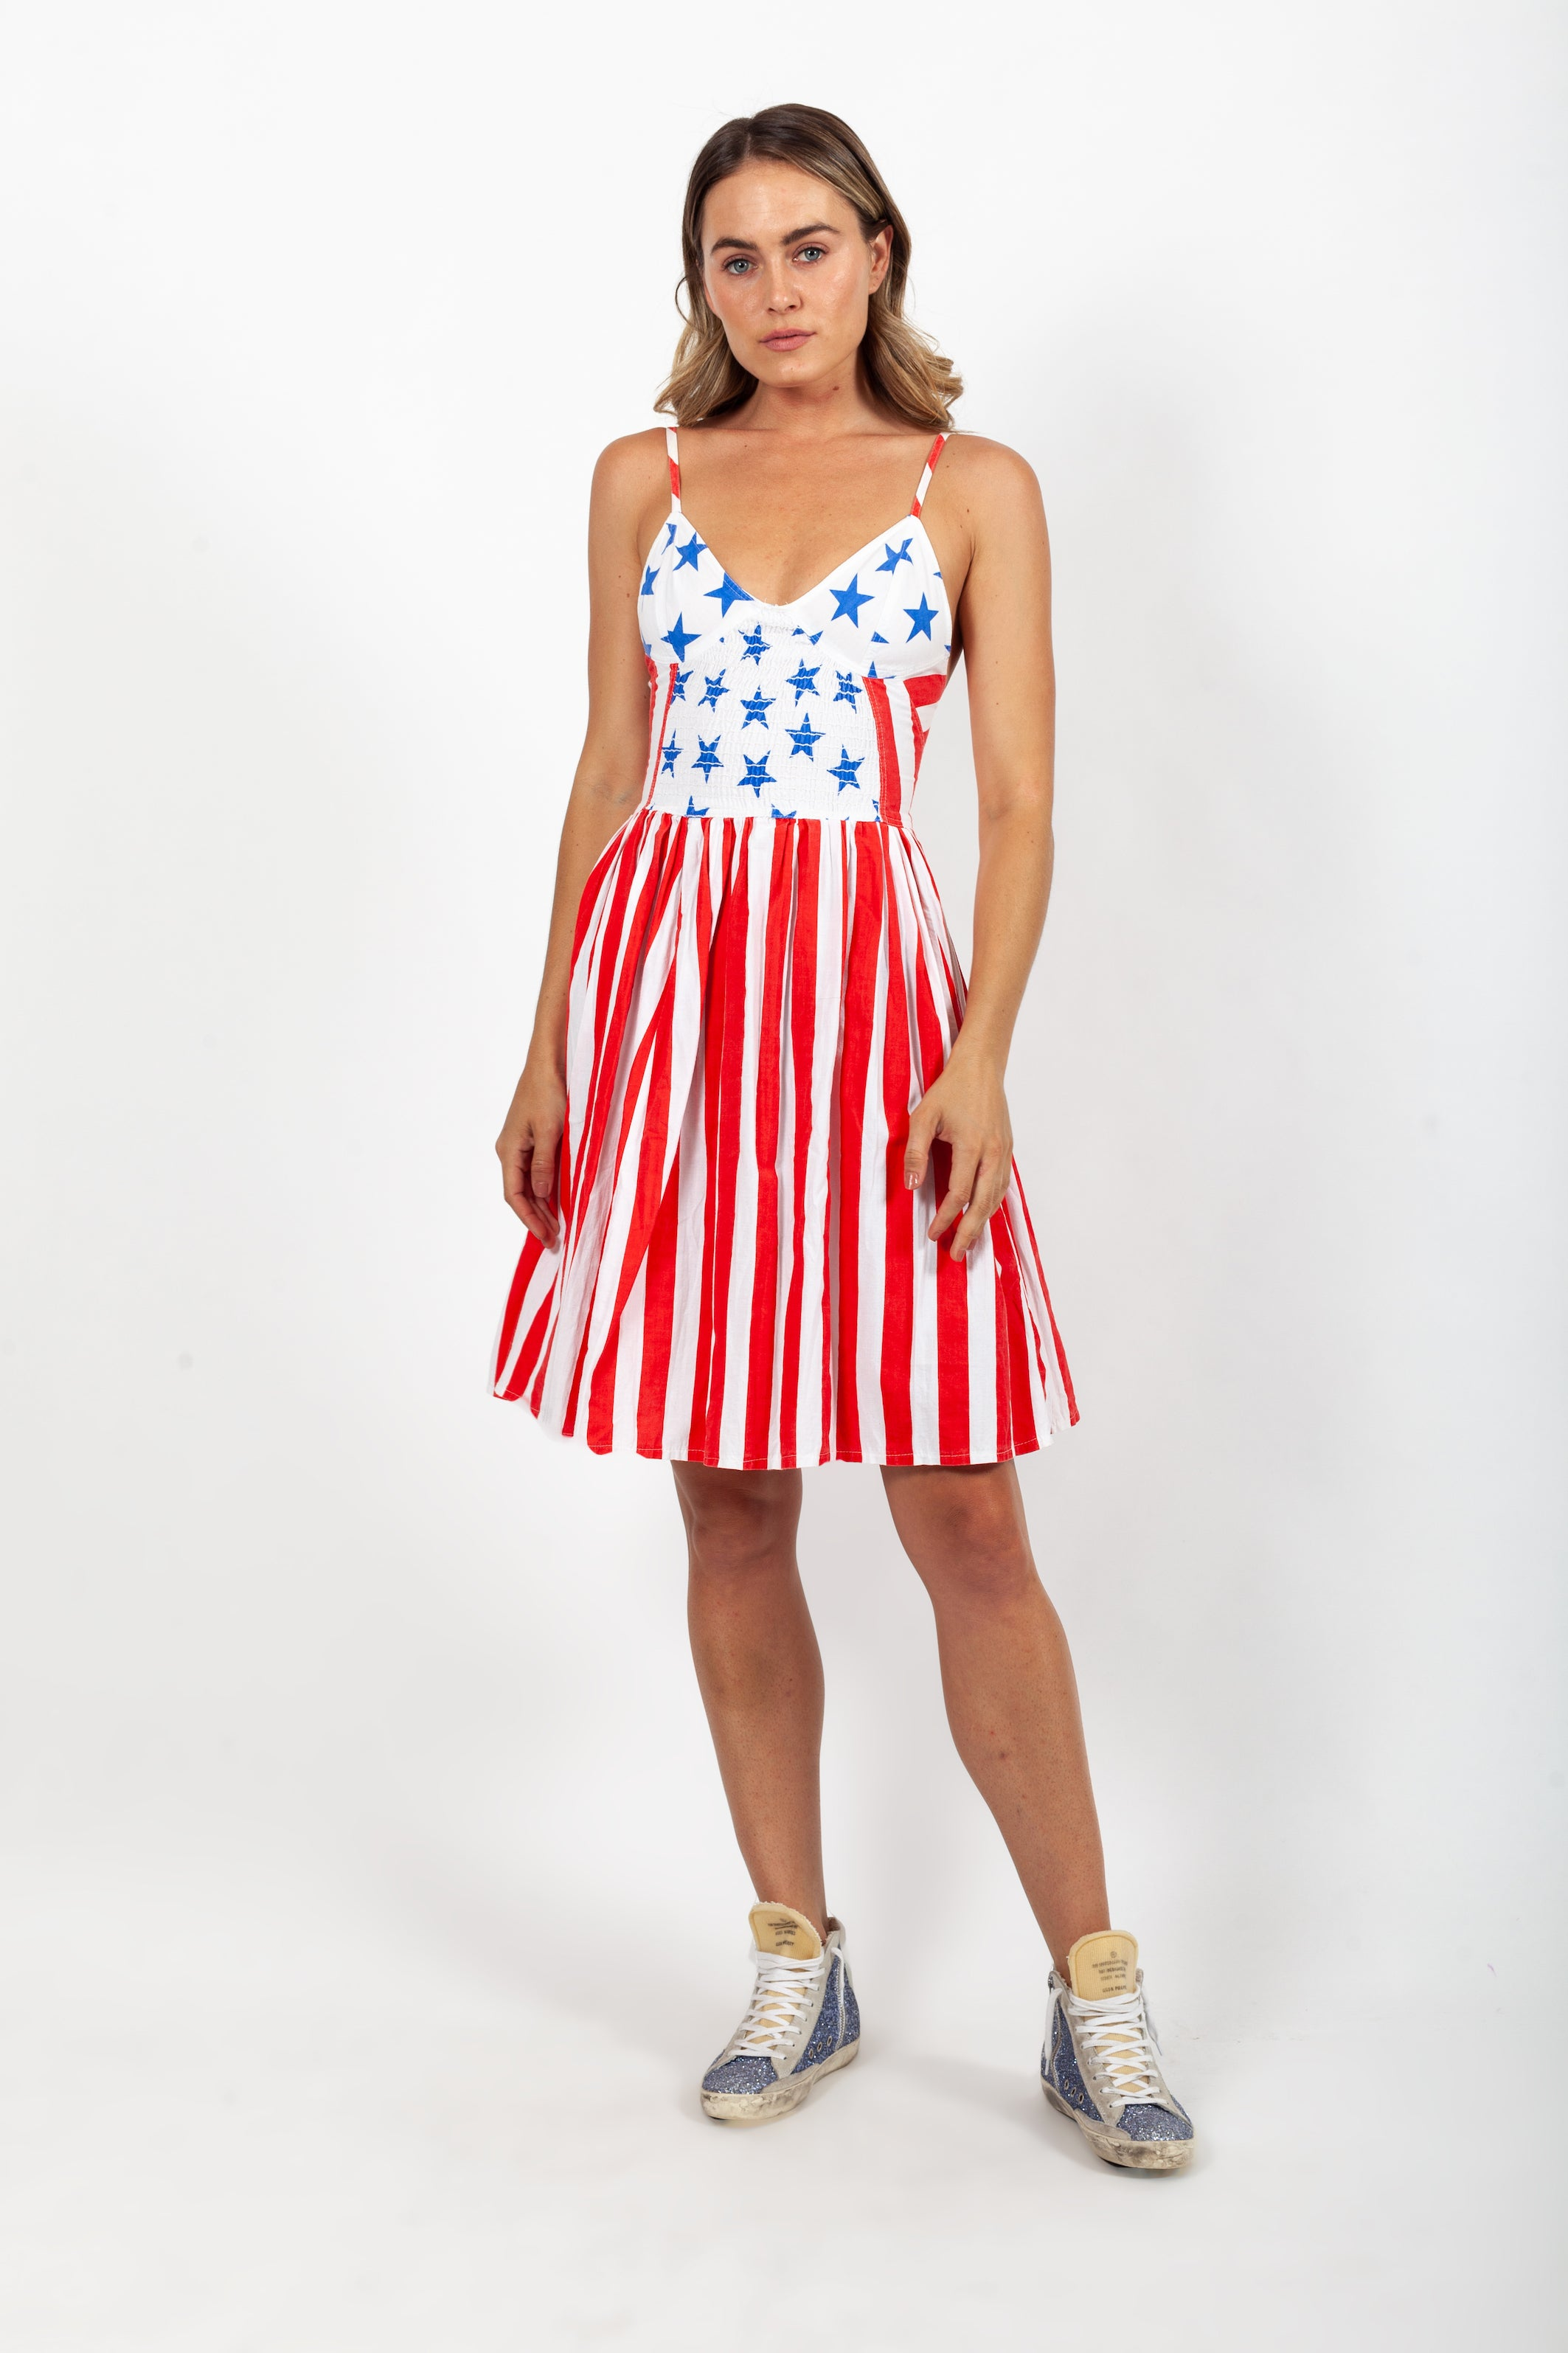 Boy London <br> 80's Americana capsule collection stars & stripes dress